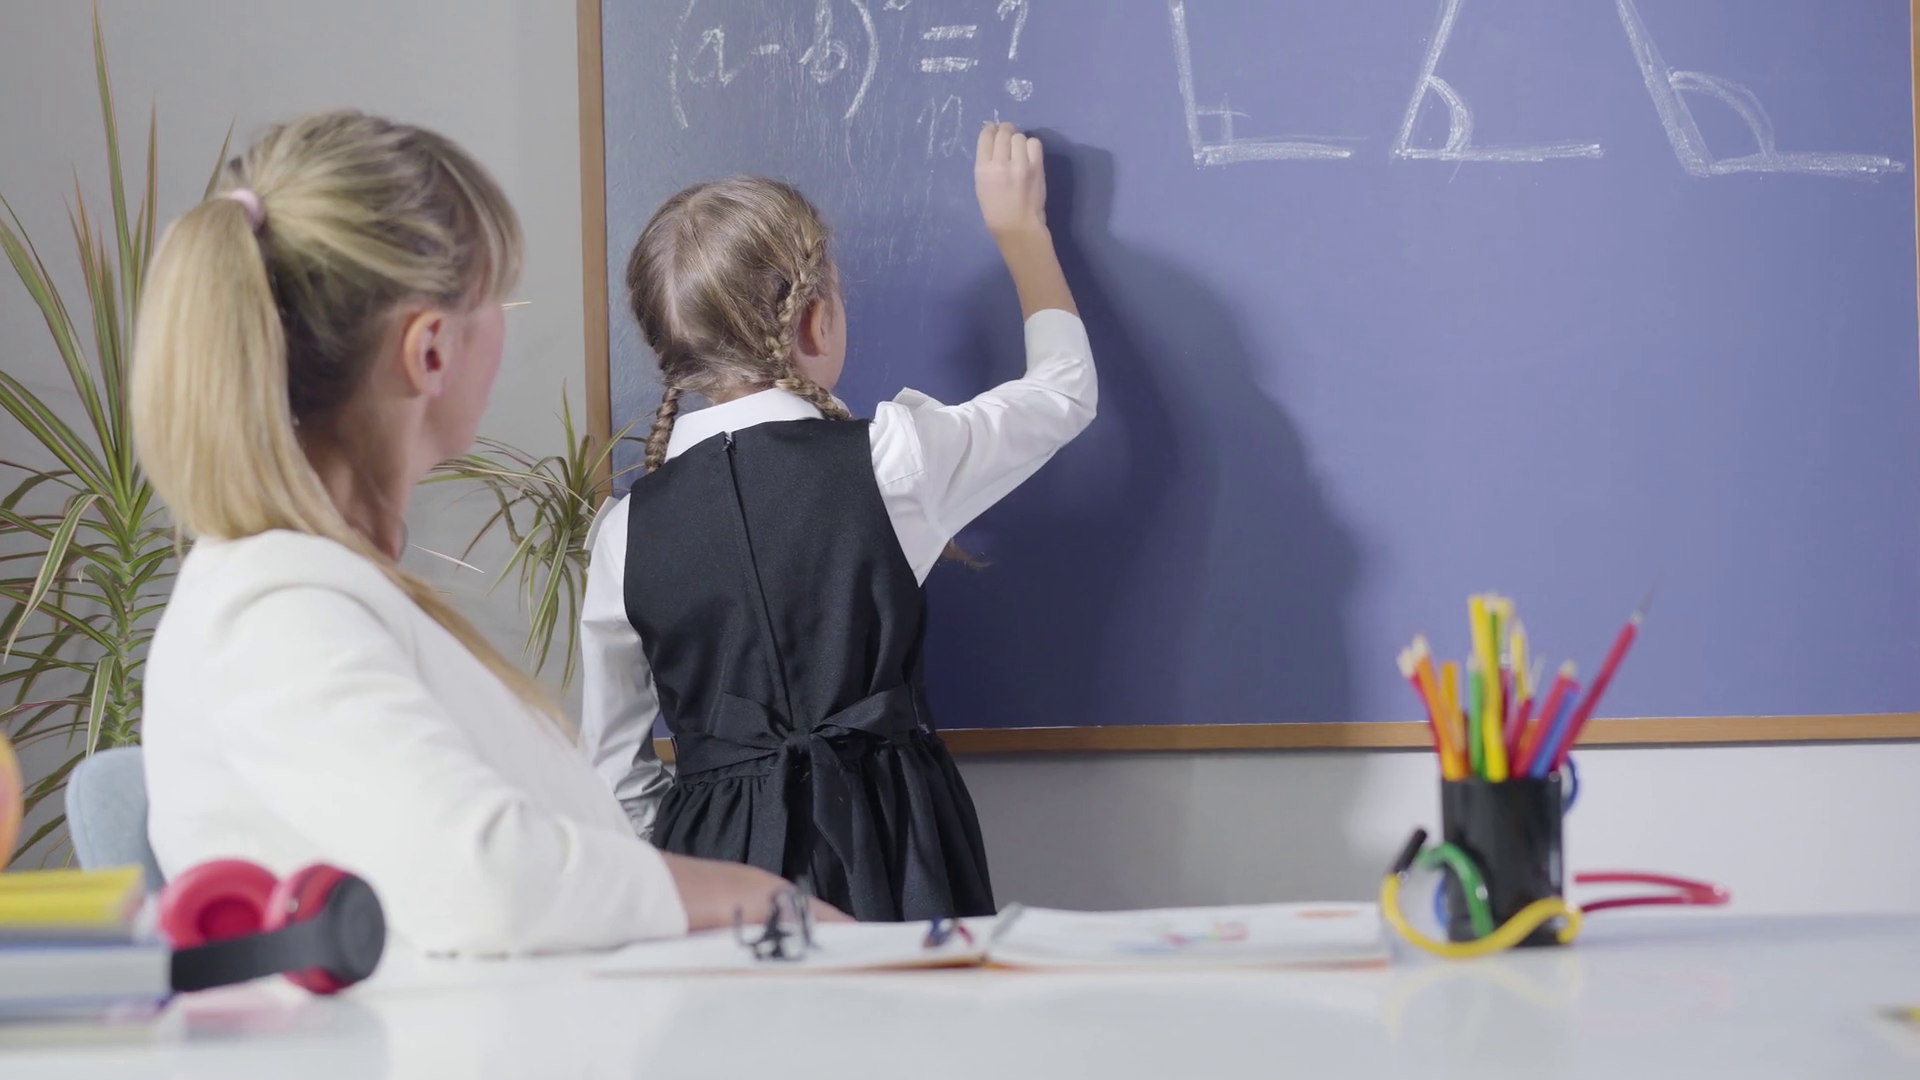 A child solving word problems in-front of teacher with the help of diagrams